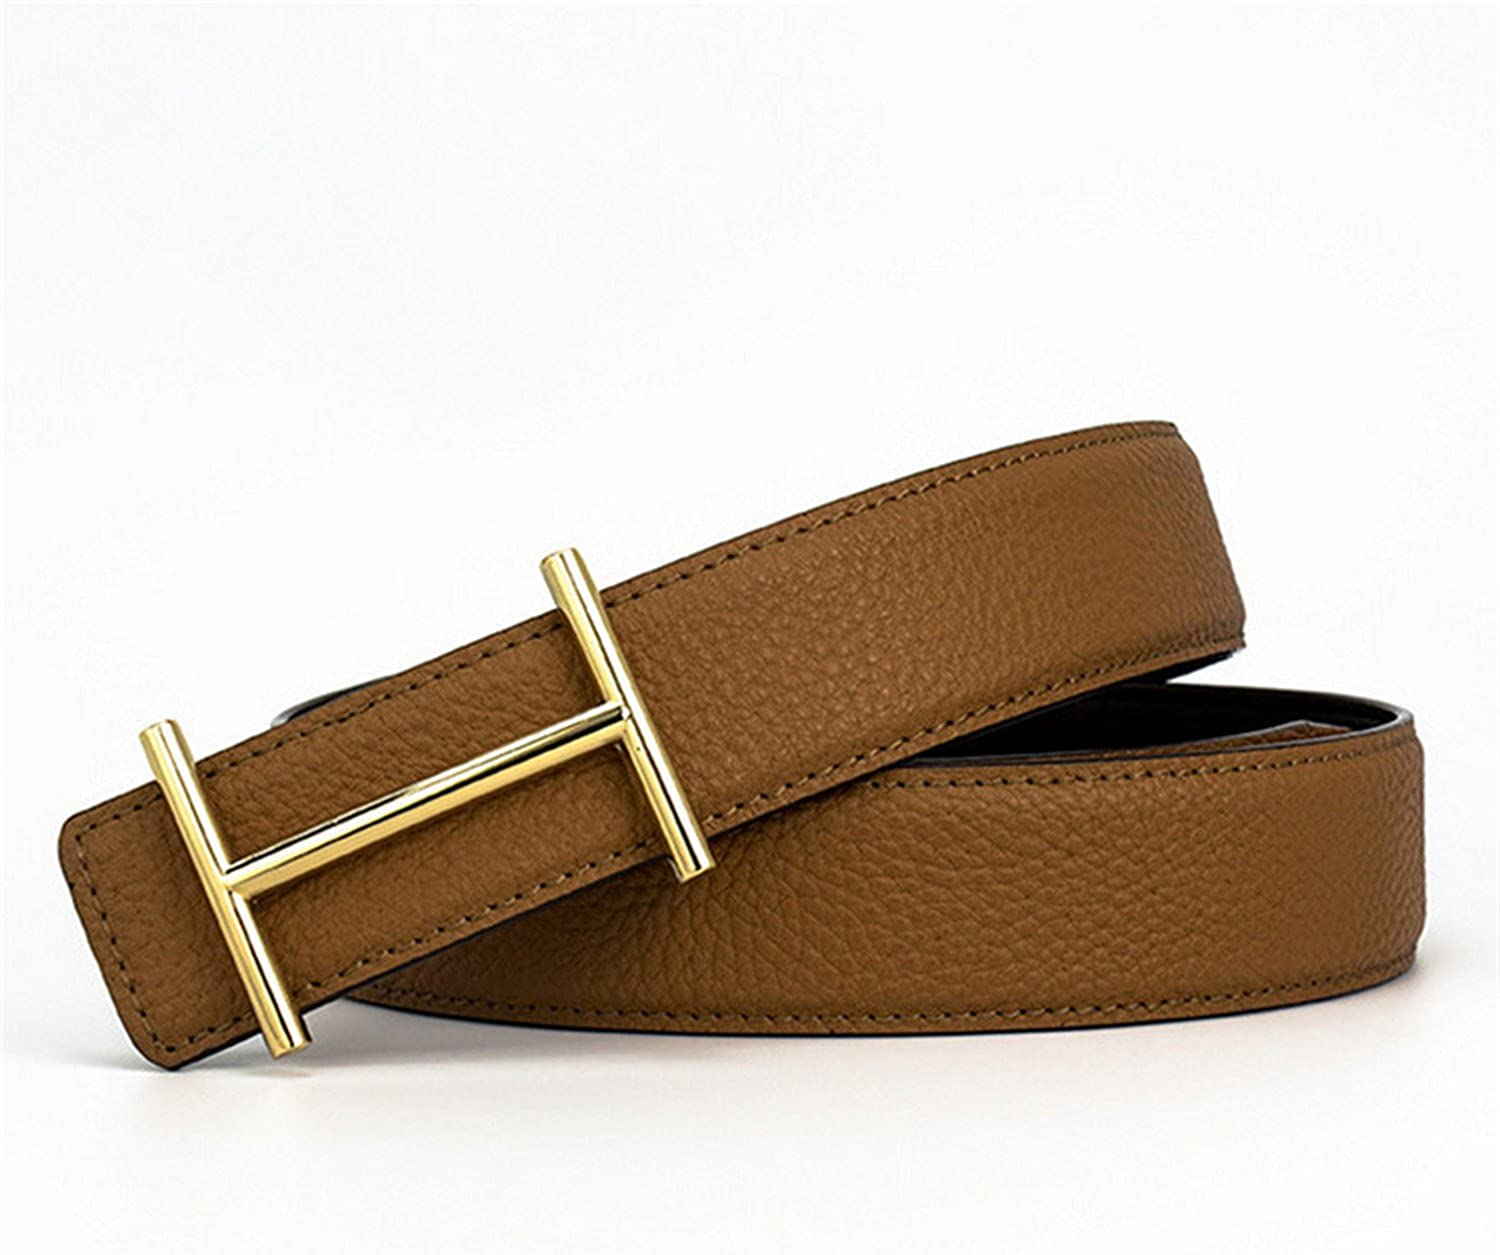 HuoGuo Mens Leather Belts Luxury H Smooth Buckle Belts For Men 5 Colors Litchi Grain Leather Belt